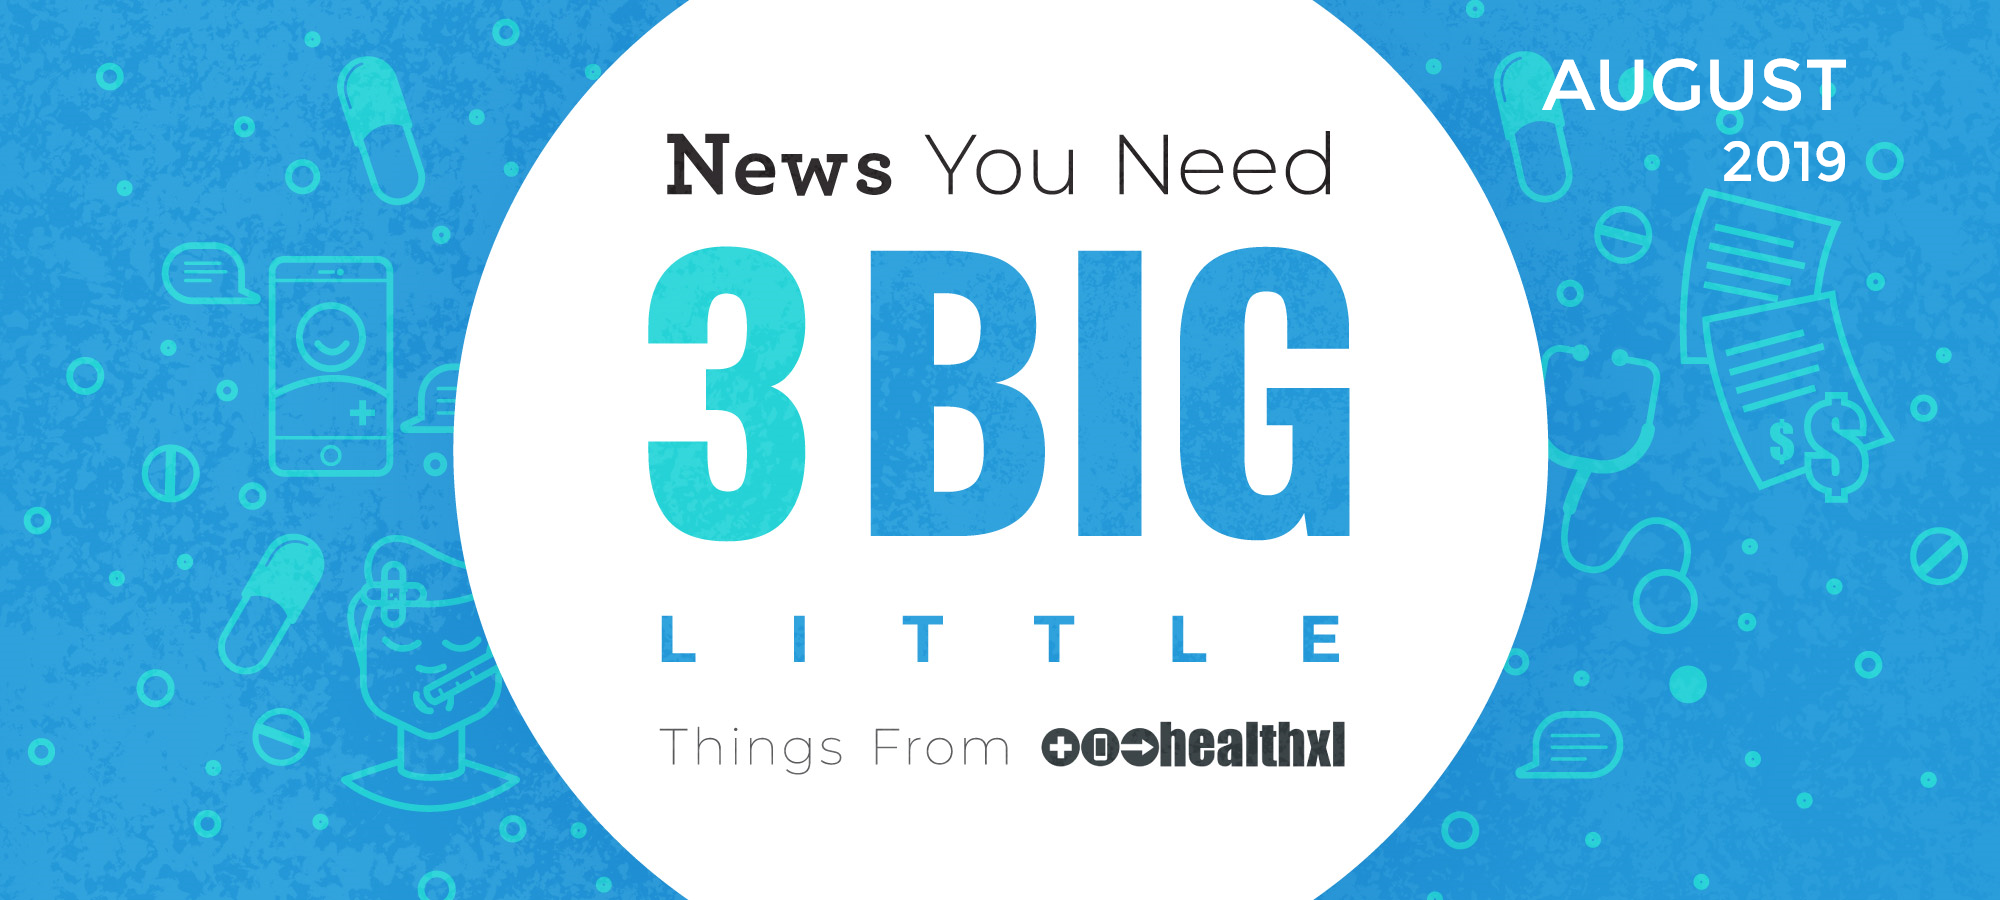 News You Need - 3 Big Little Things from HealthXL - August 2019